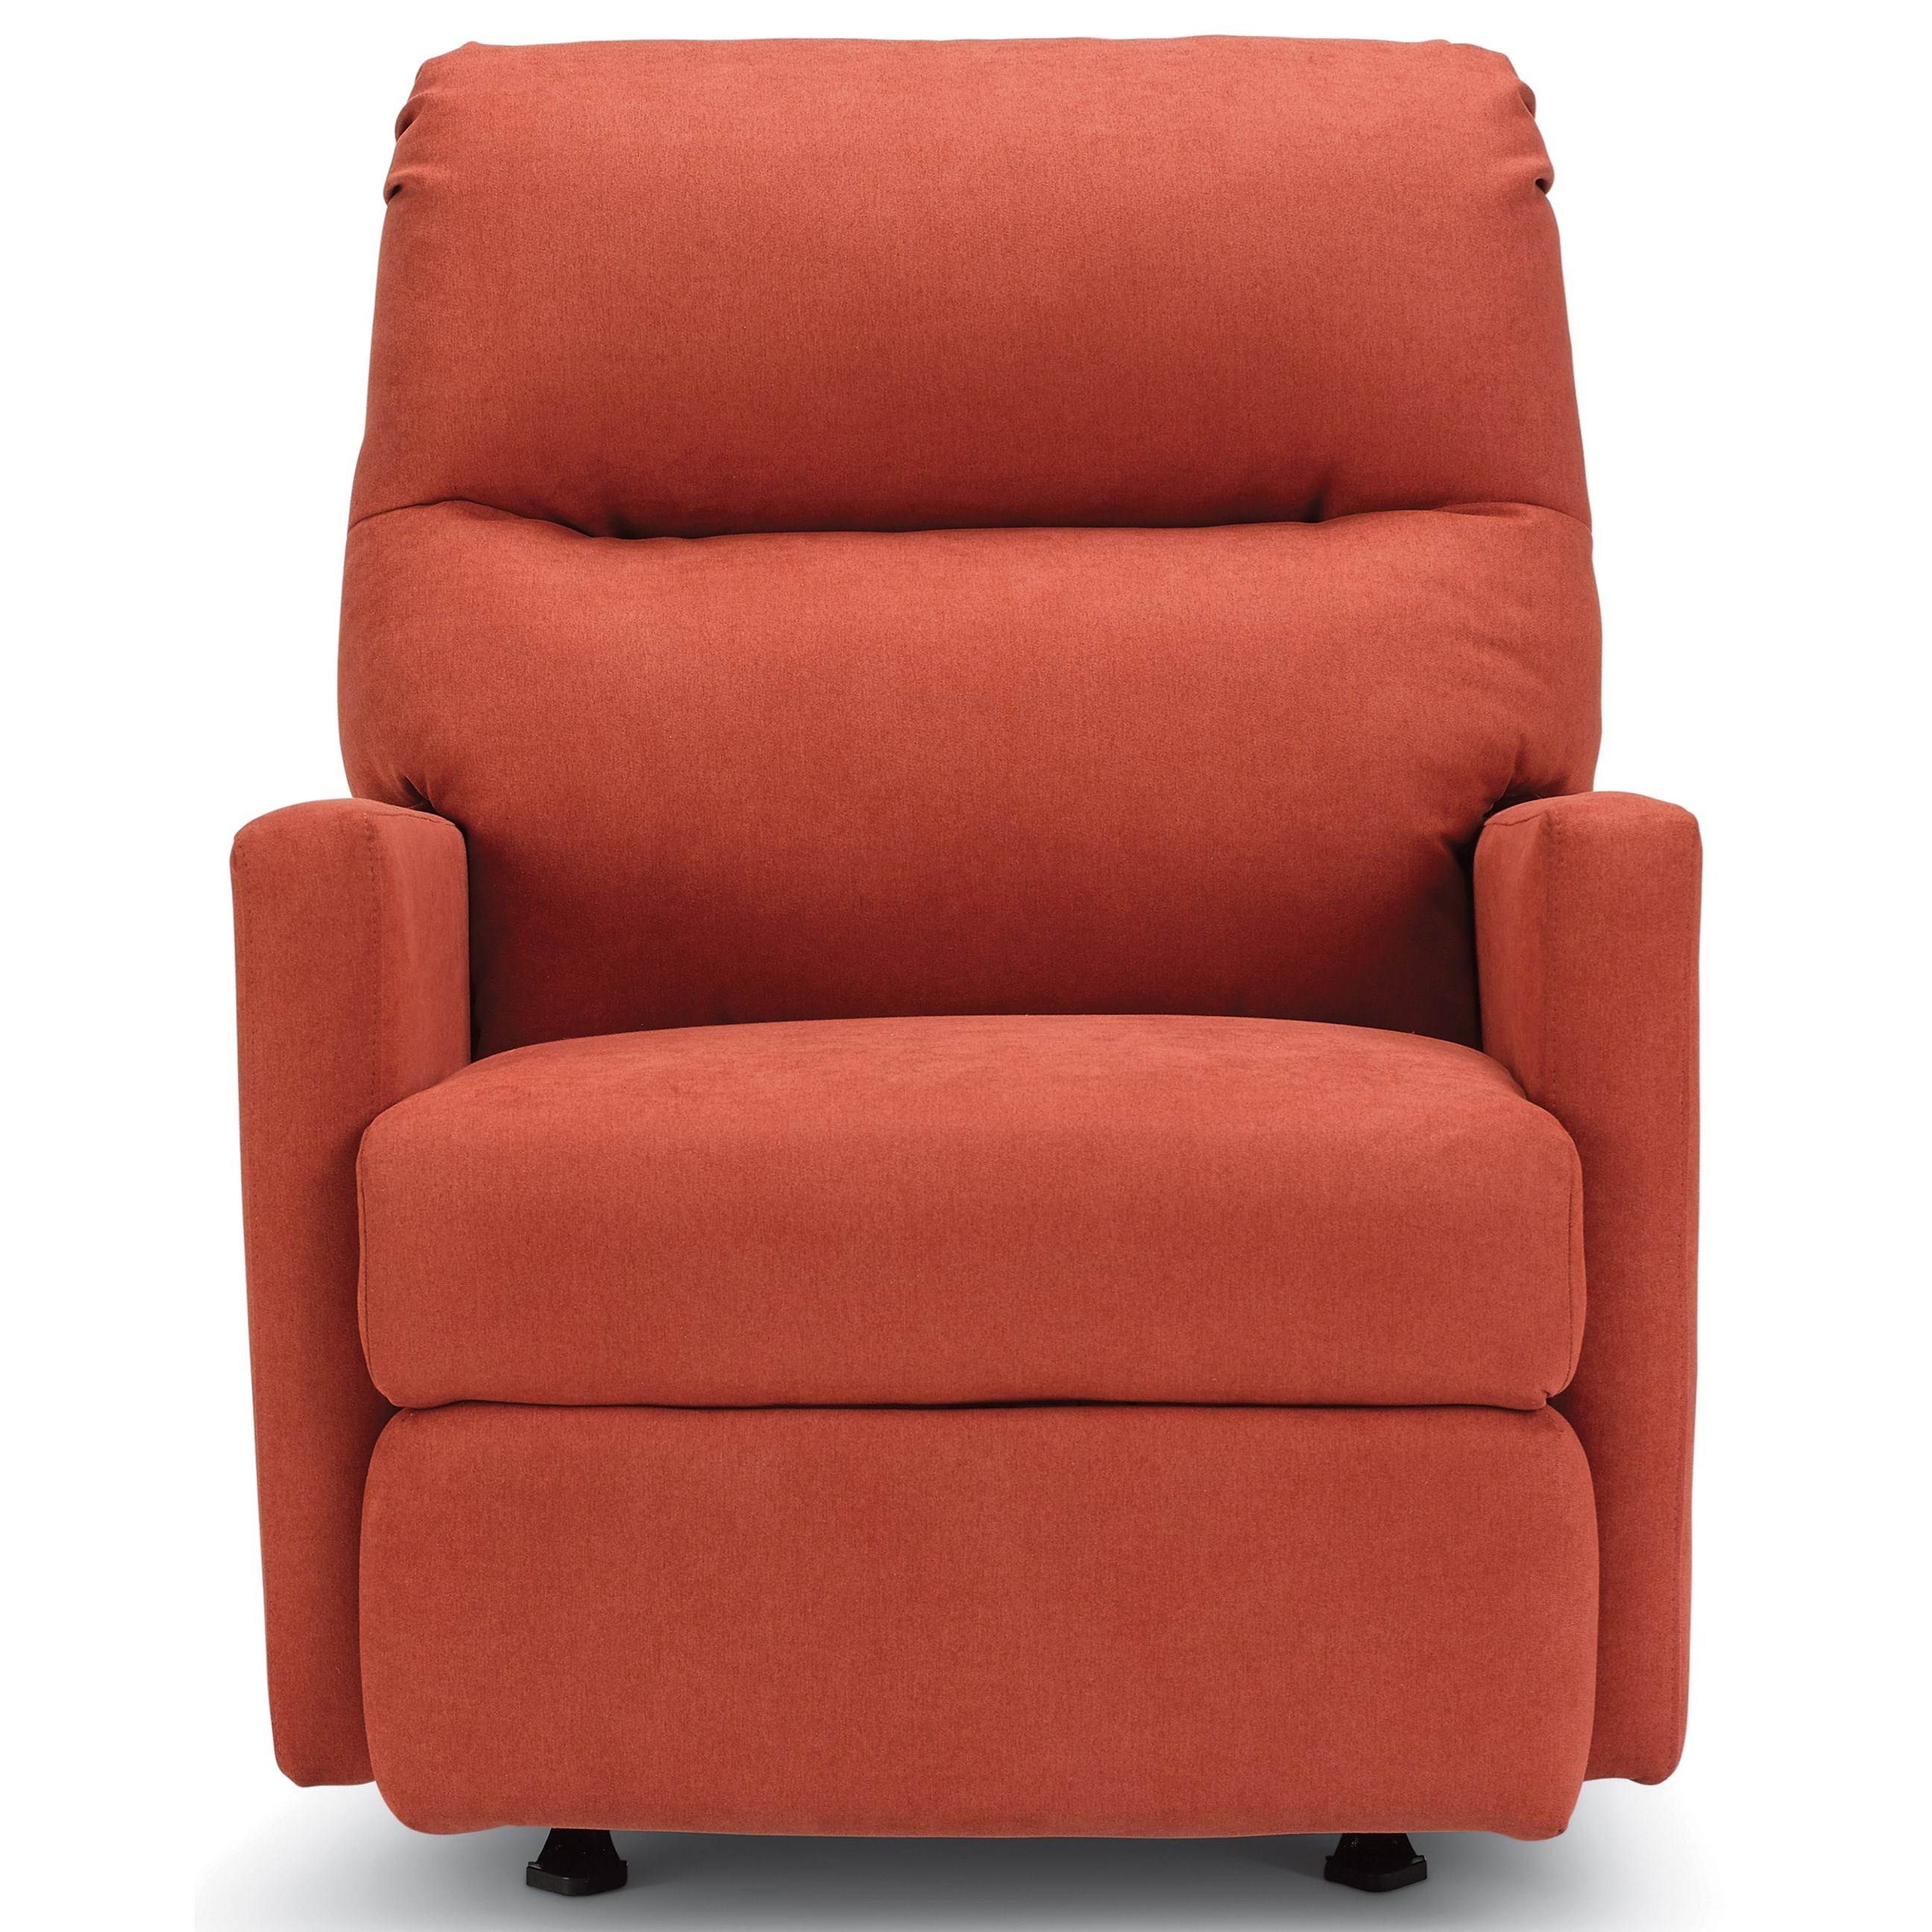 Covina Space Saver Recliner by Best Home Furnishings at Walker's Furniture